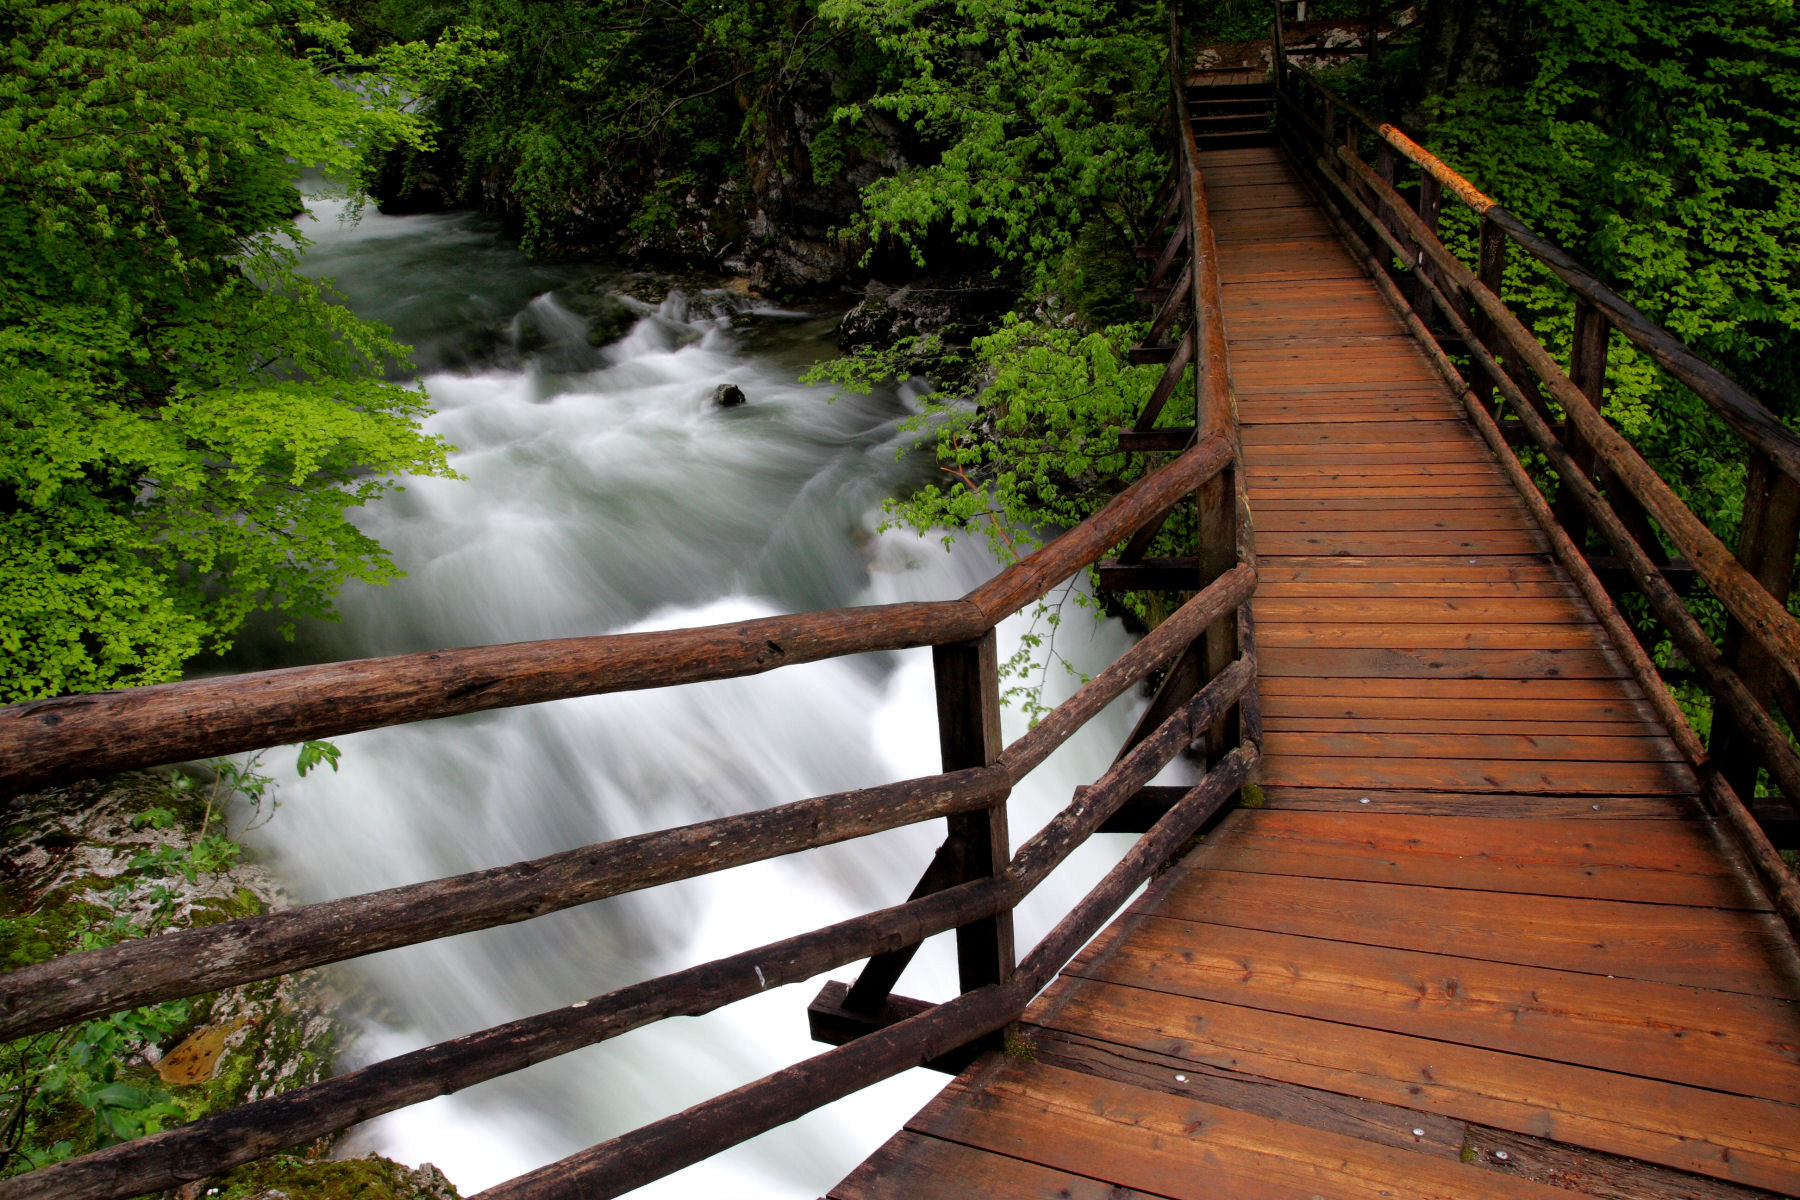 The Vintgar gorge path is well maintained and safe for young and old